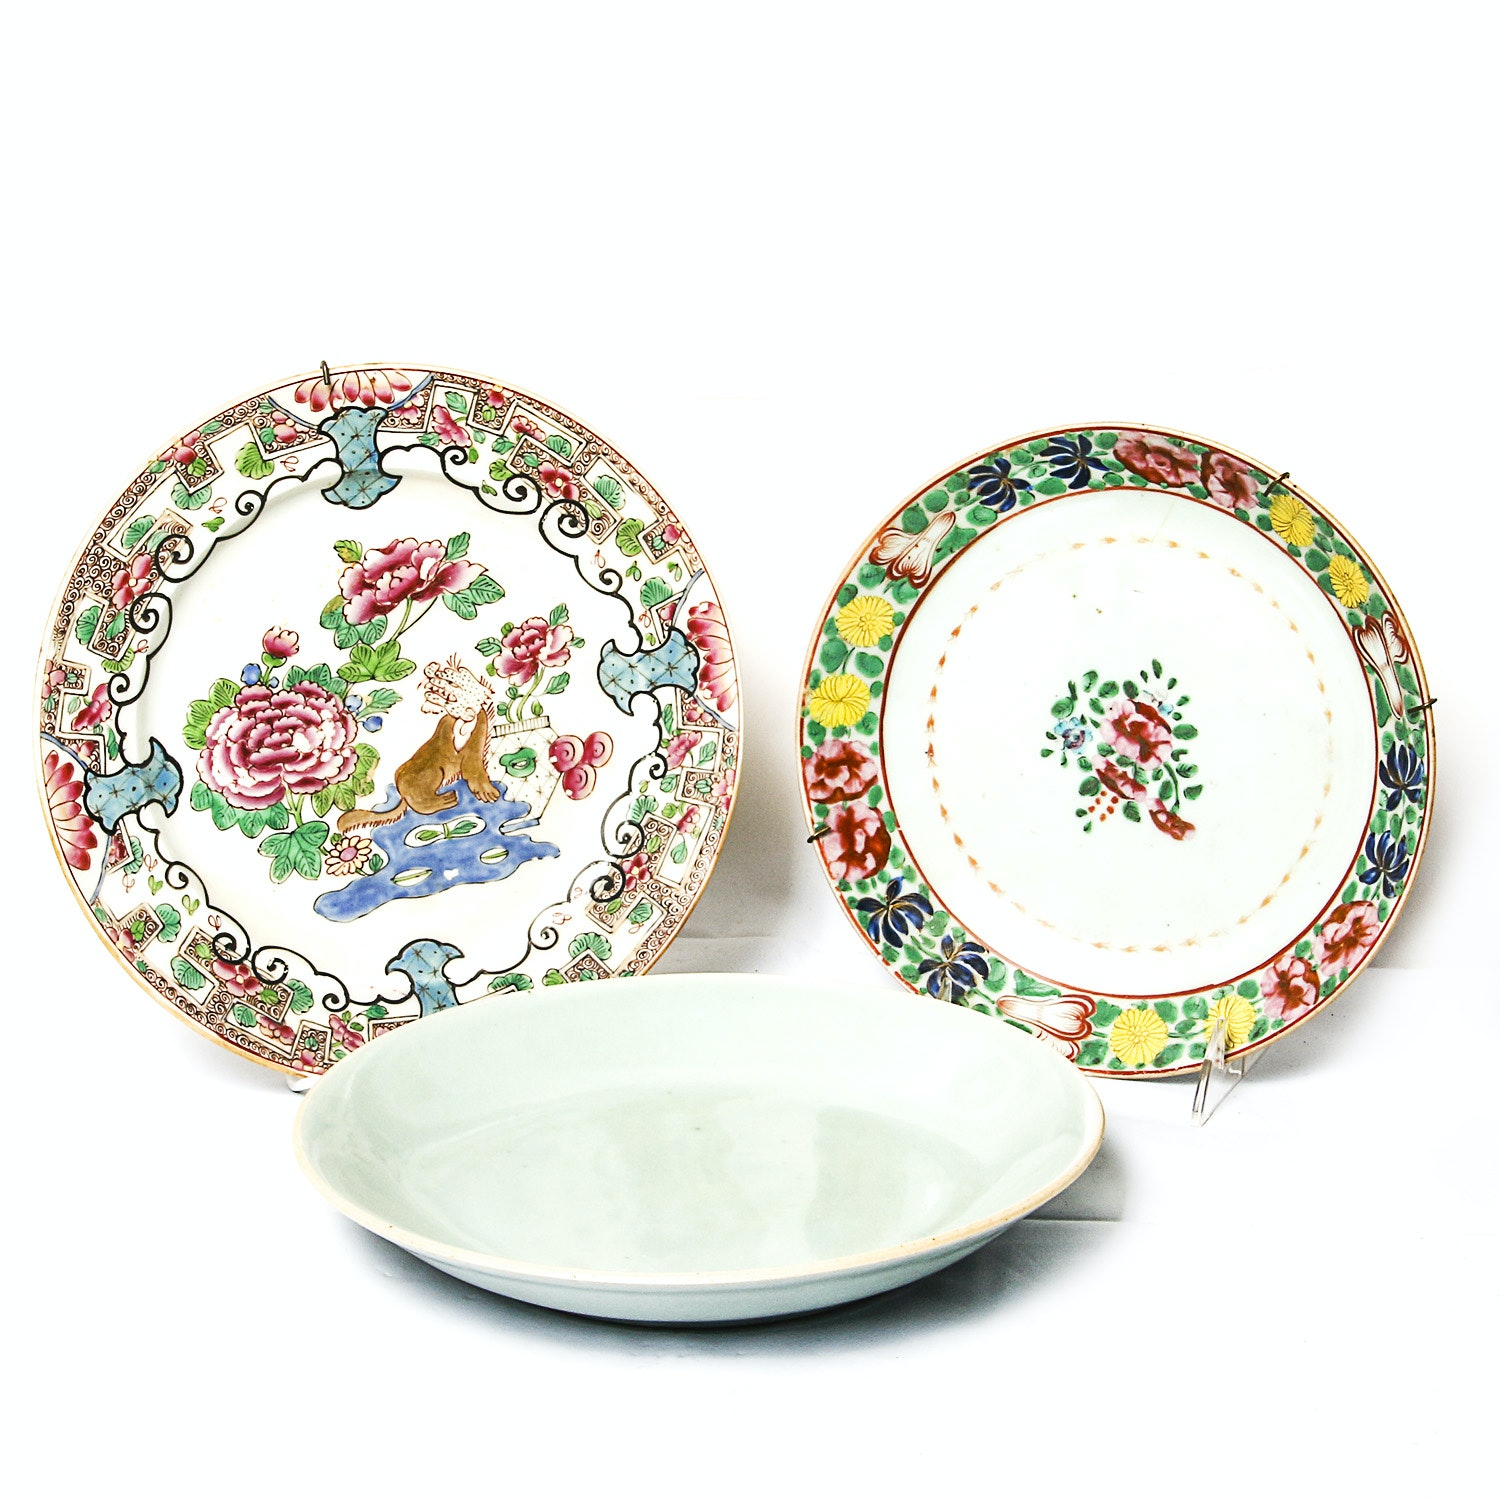 Collection of Antique and Vintage Chinese Porcelain